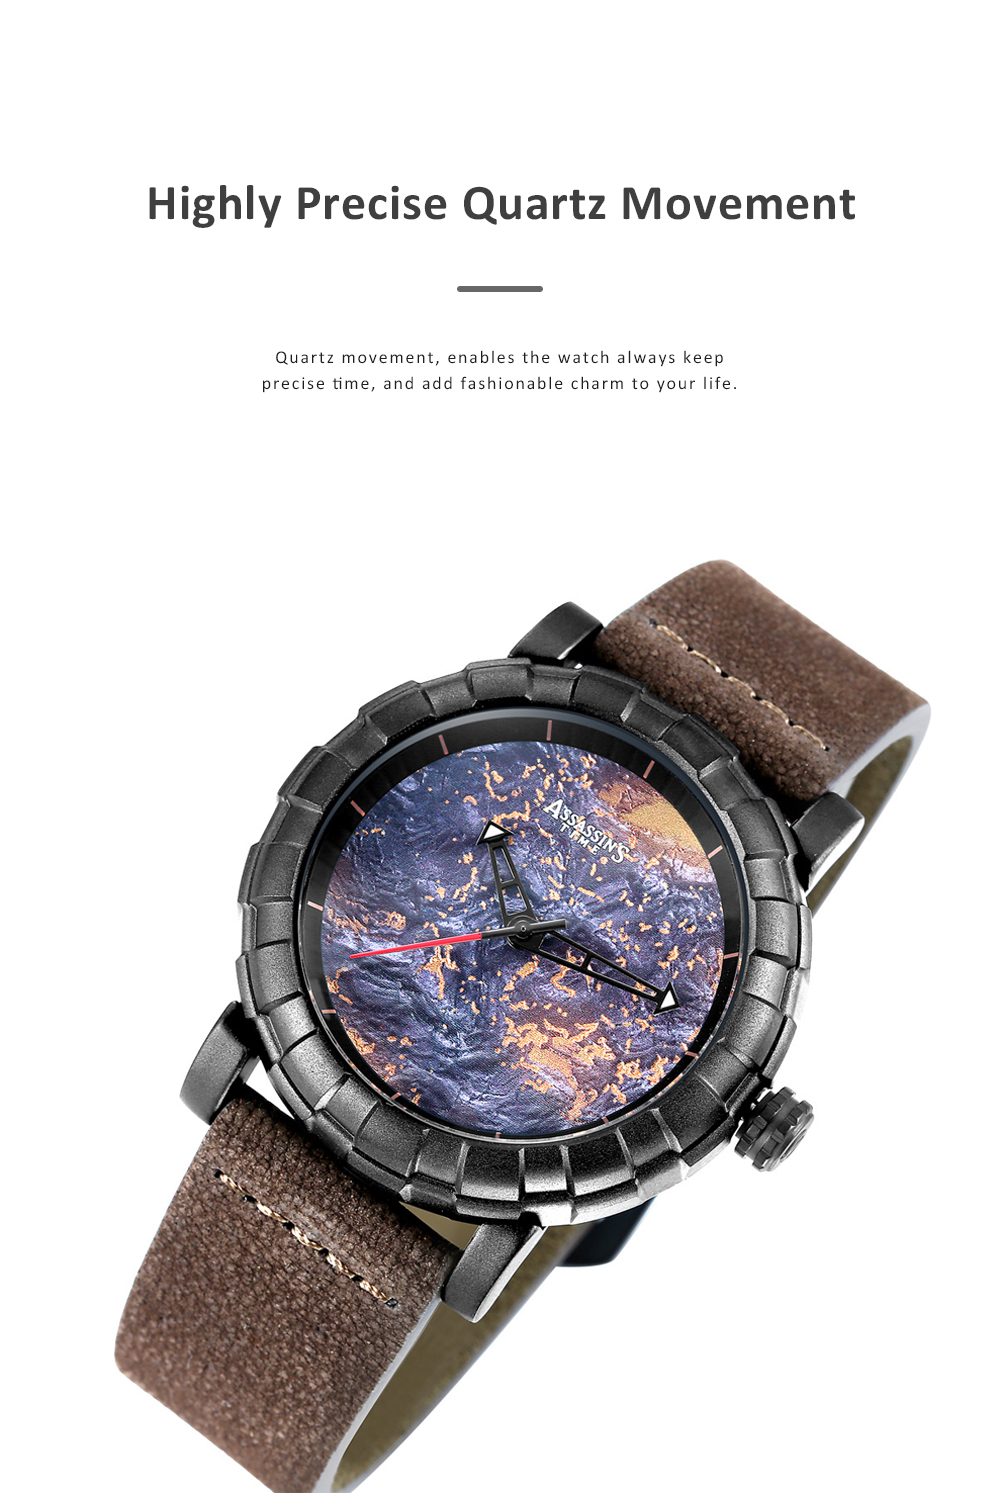 Burning Fire Creative Waterproof Electronic Watch for Men Casual with Quartz Movement and Adjustable Leather Strap 2